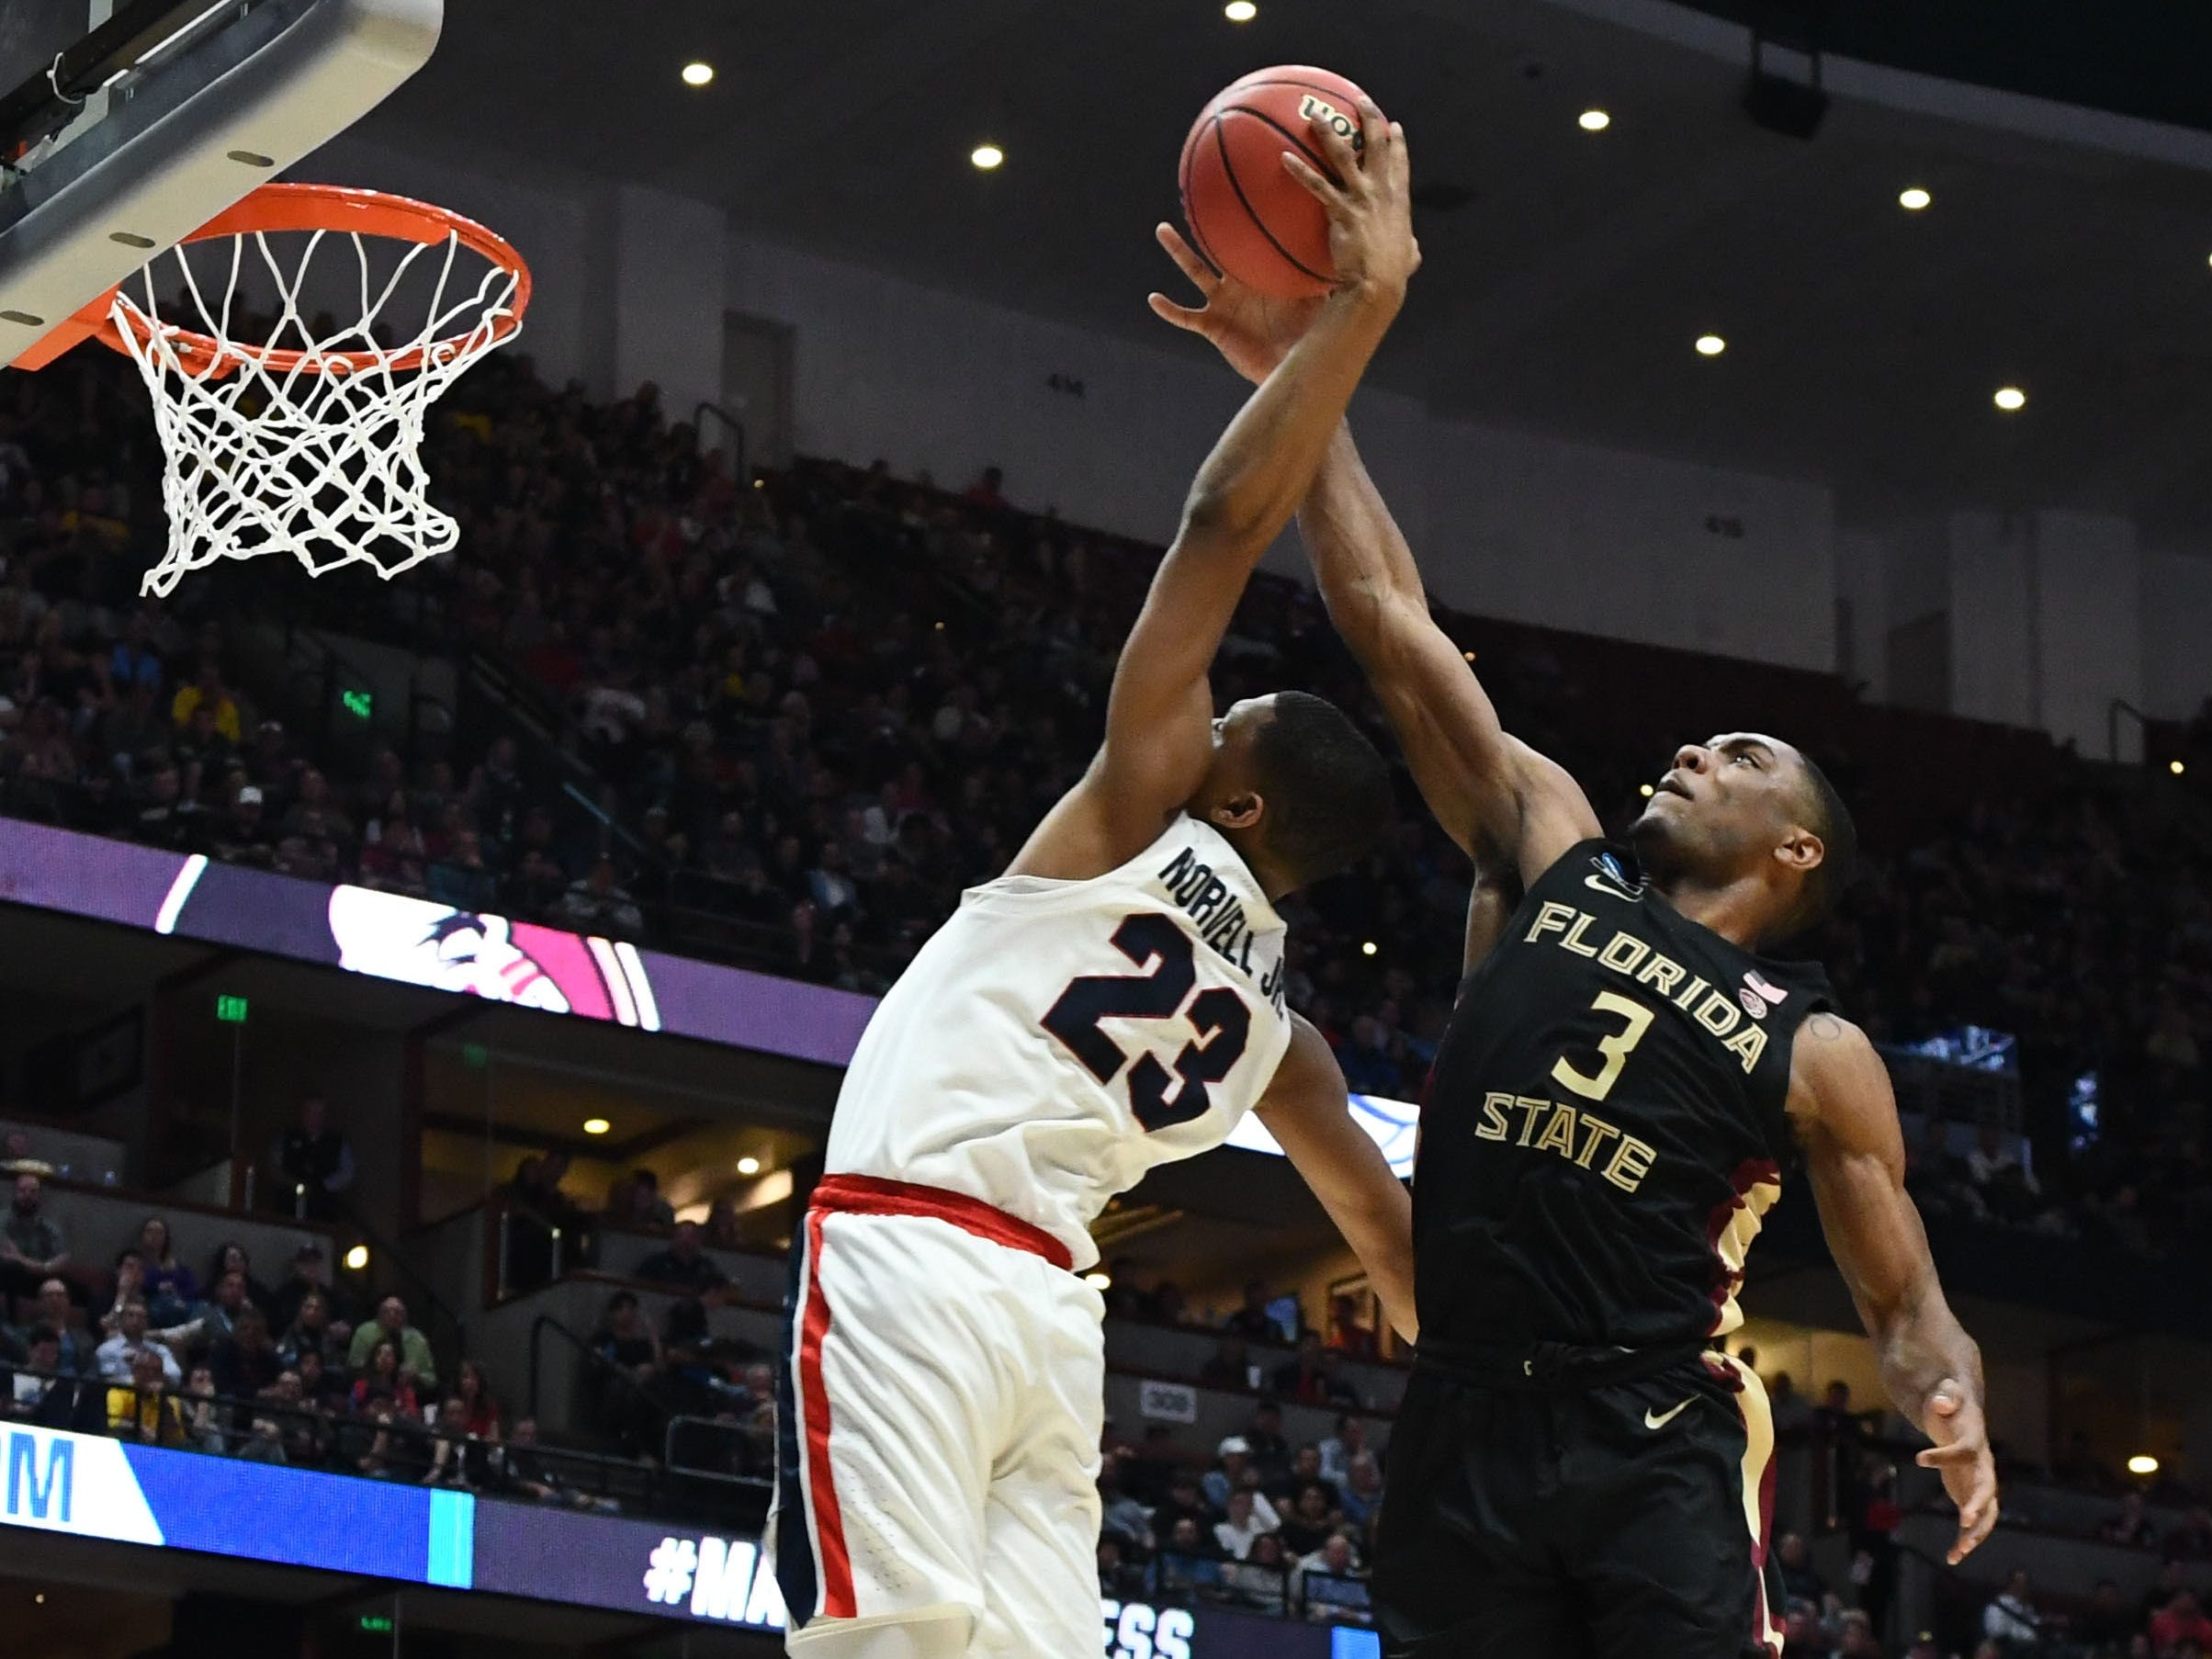 Sweet 16: Florida State Seminoles guard Trent Forrest defends against Gonzaga Bulldogs guard Zach Norvell.